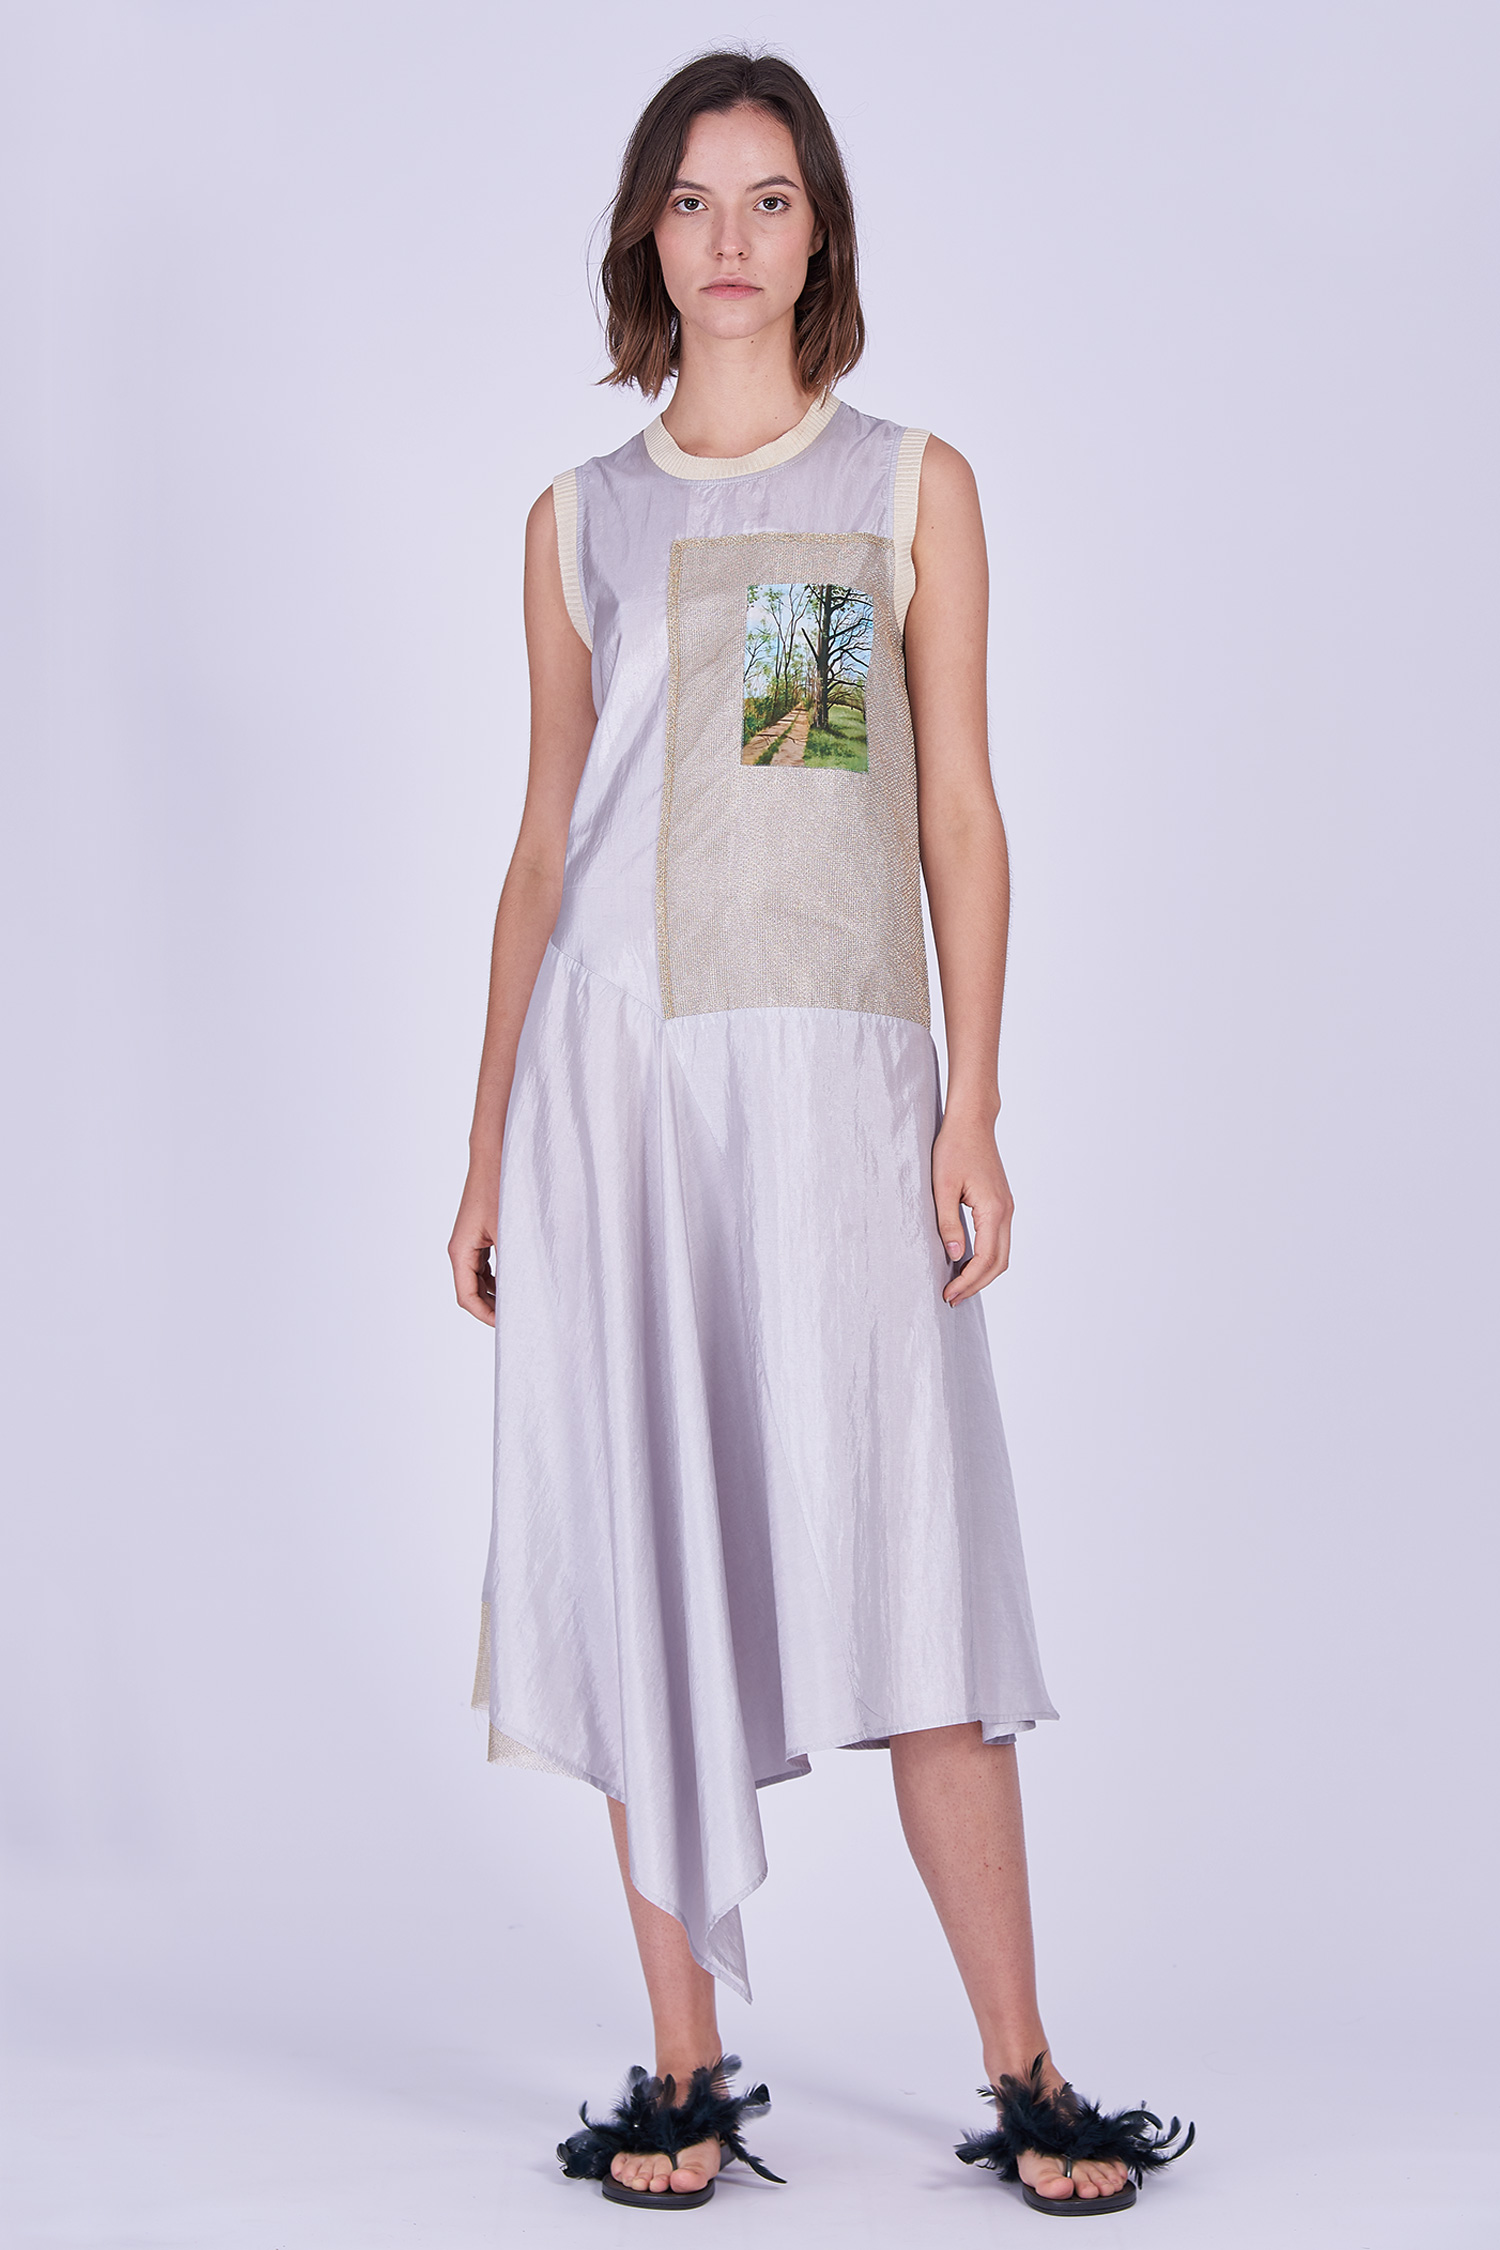 Acephala Ss2020 Sleeveless Summer Dress Letnia Sukienka Front 2